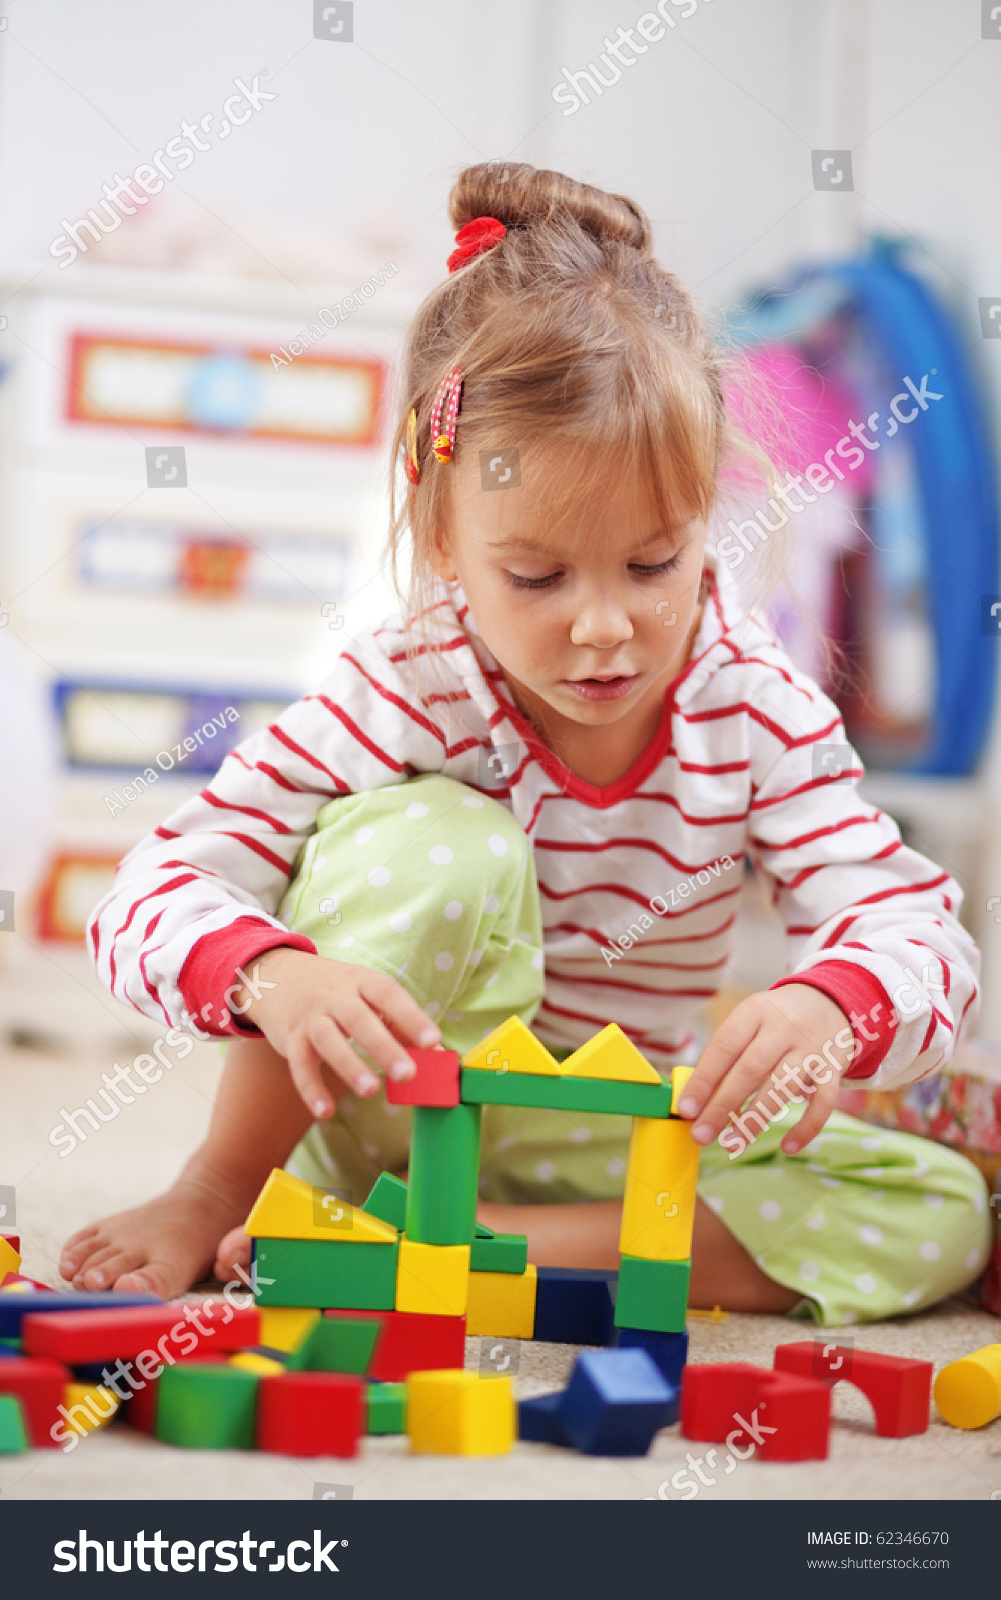 Child Playing With Blocks In The Kindergarten Stock Photo ...